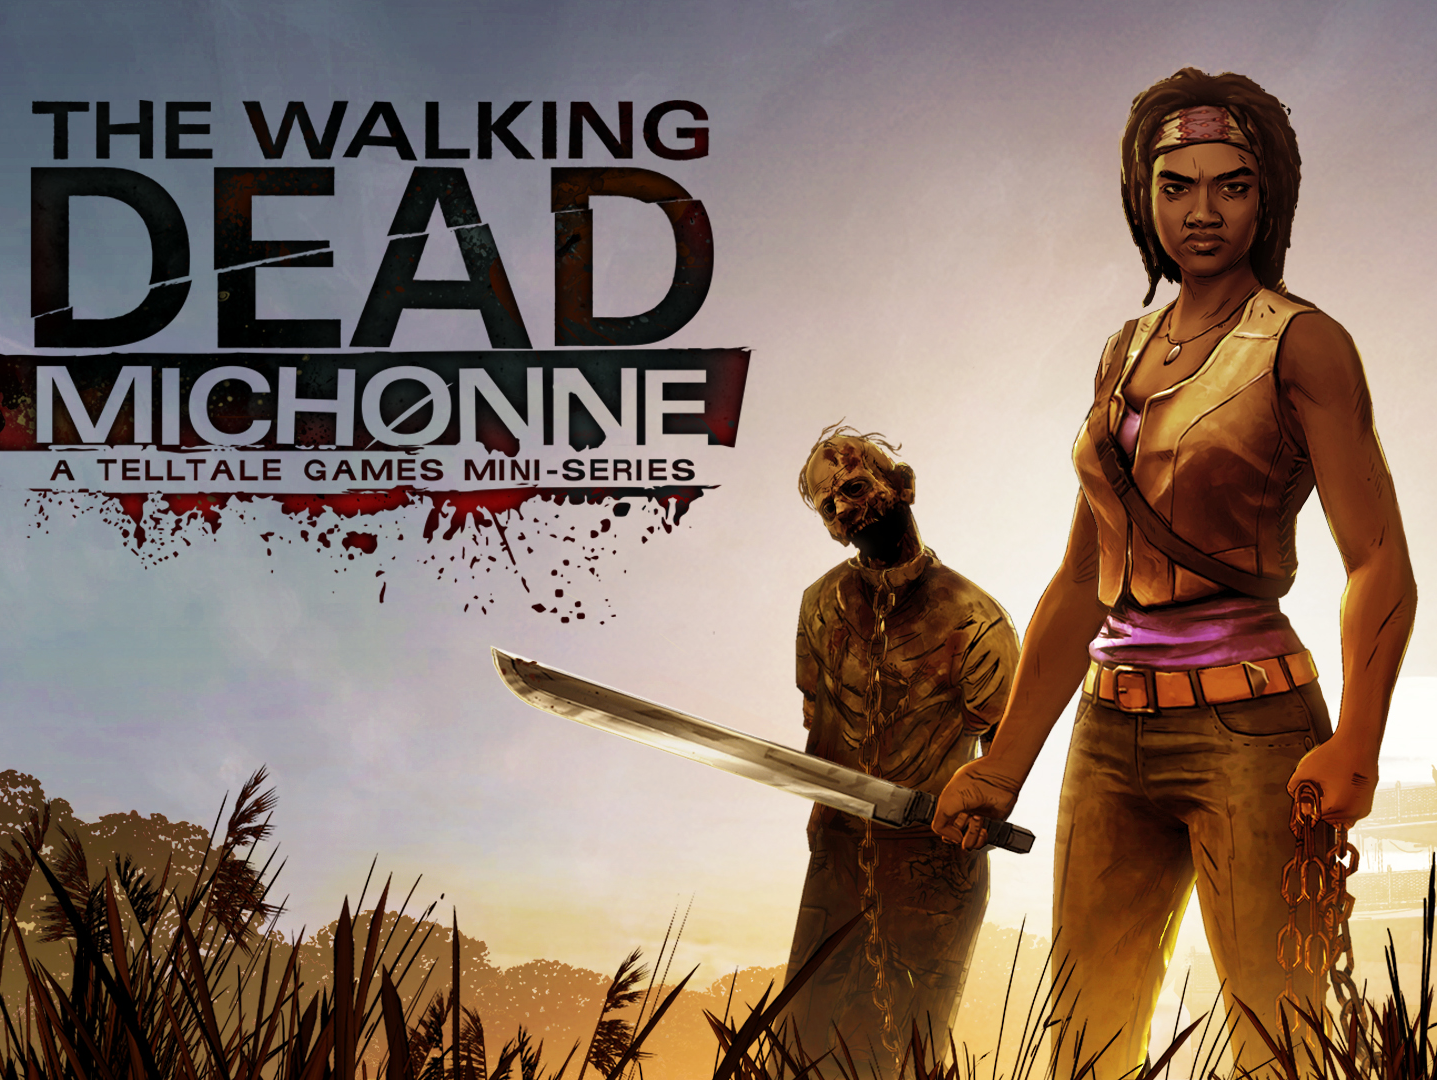 Mira un adelanto del nuevo The Walking Dead: Michonne